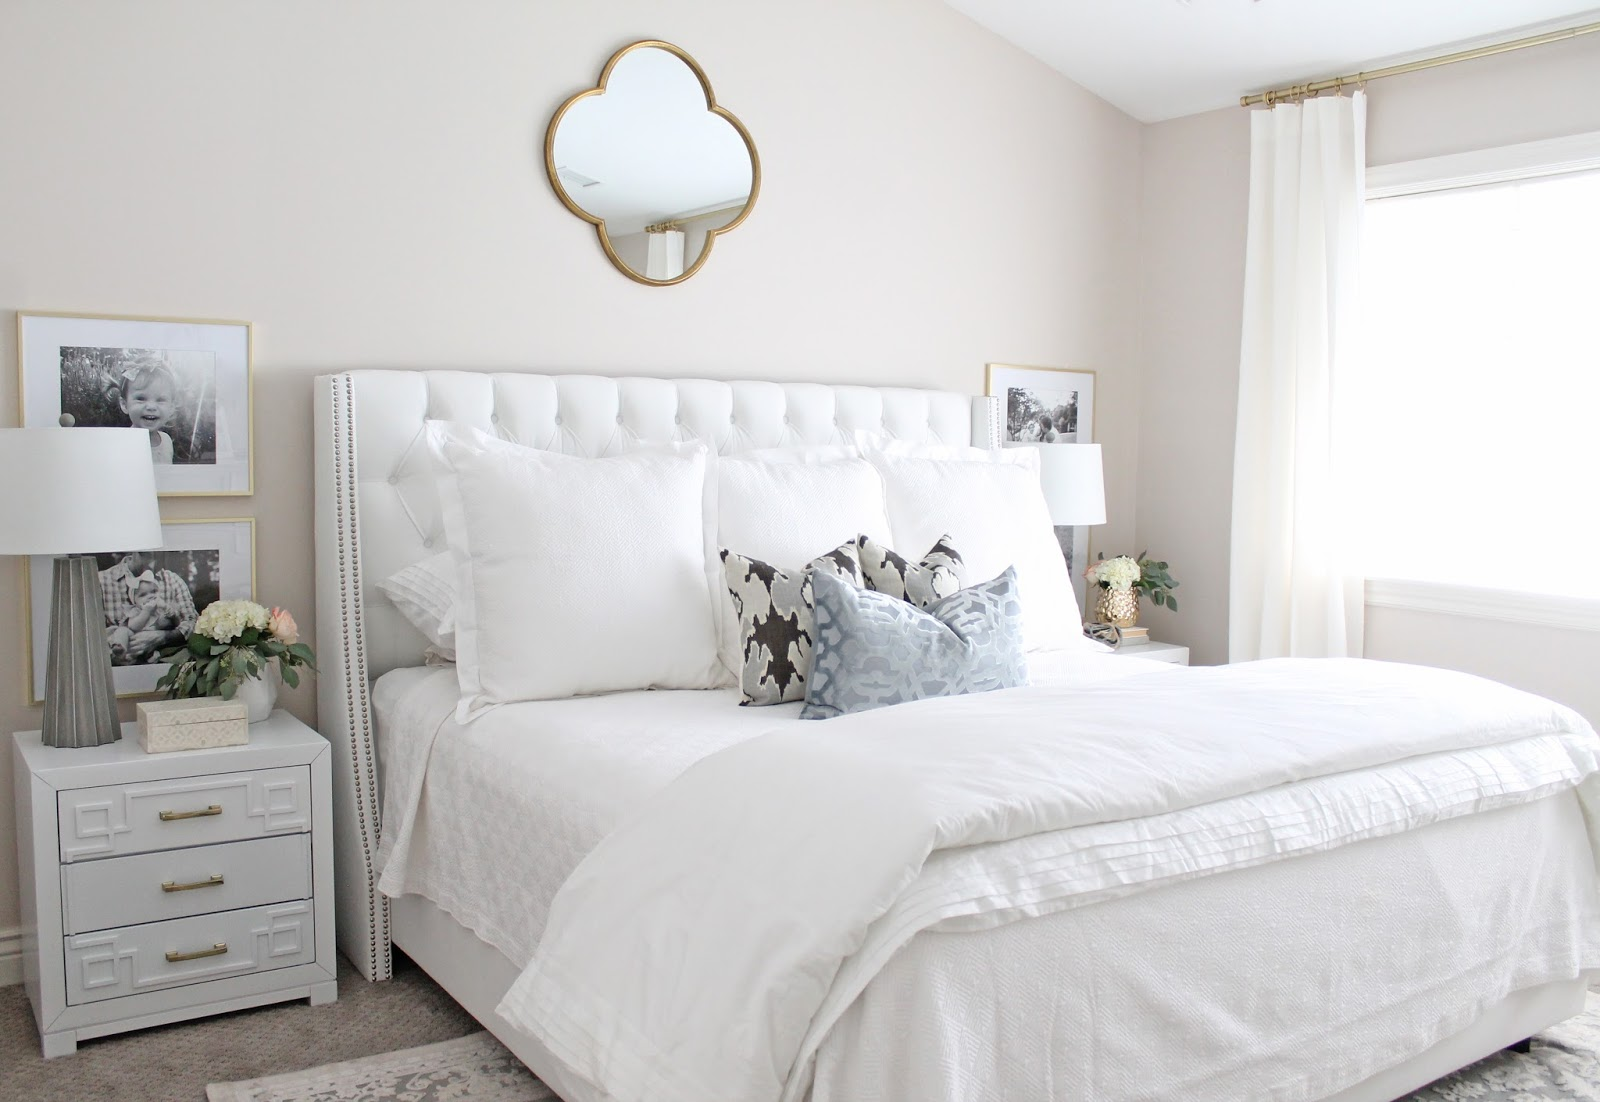 Master Bedroom Reveal This post contains affiliates